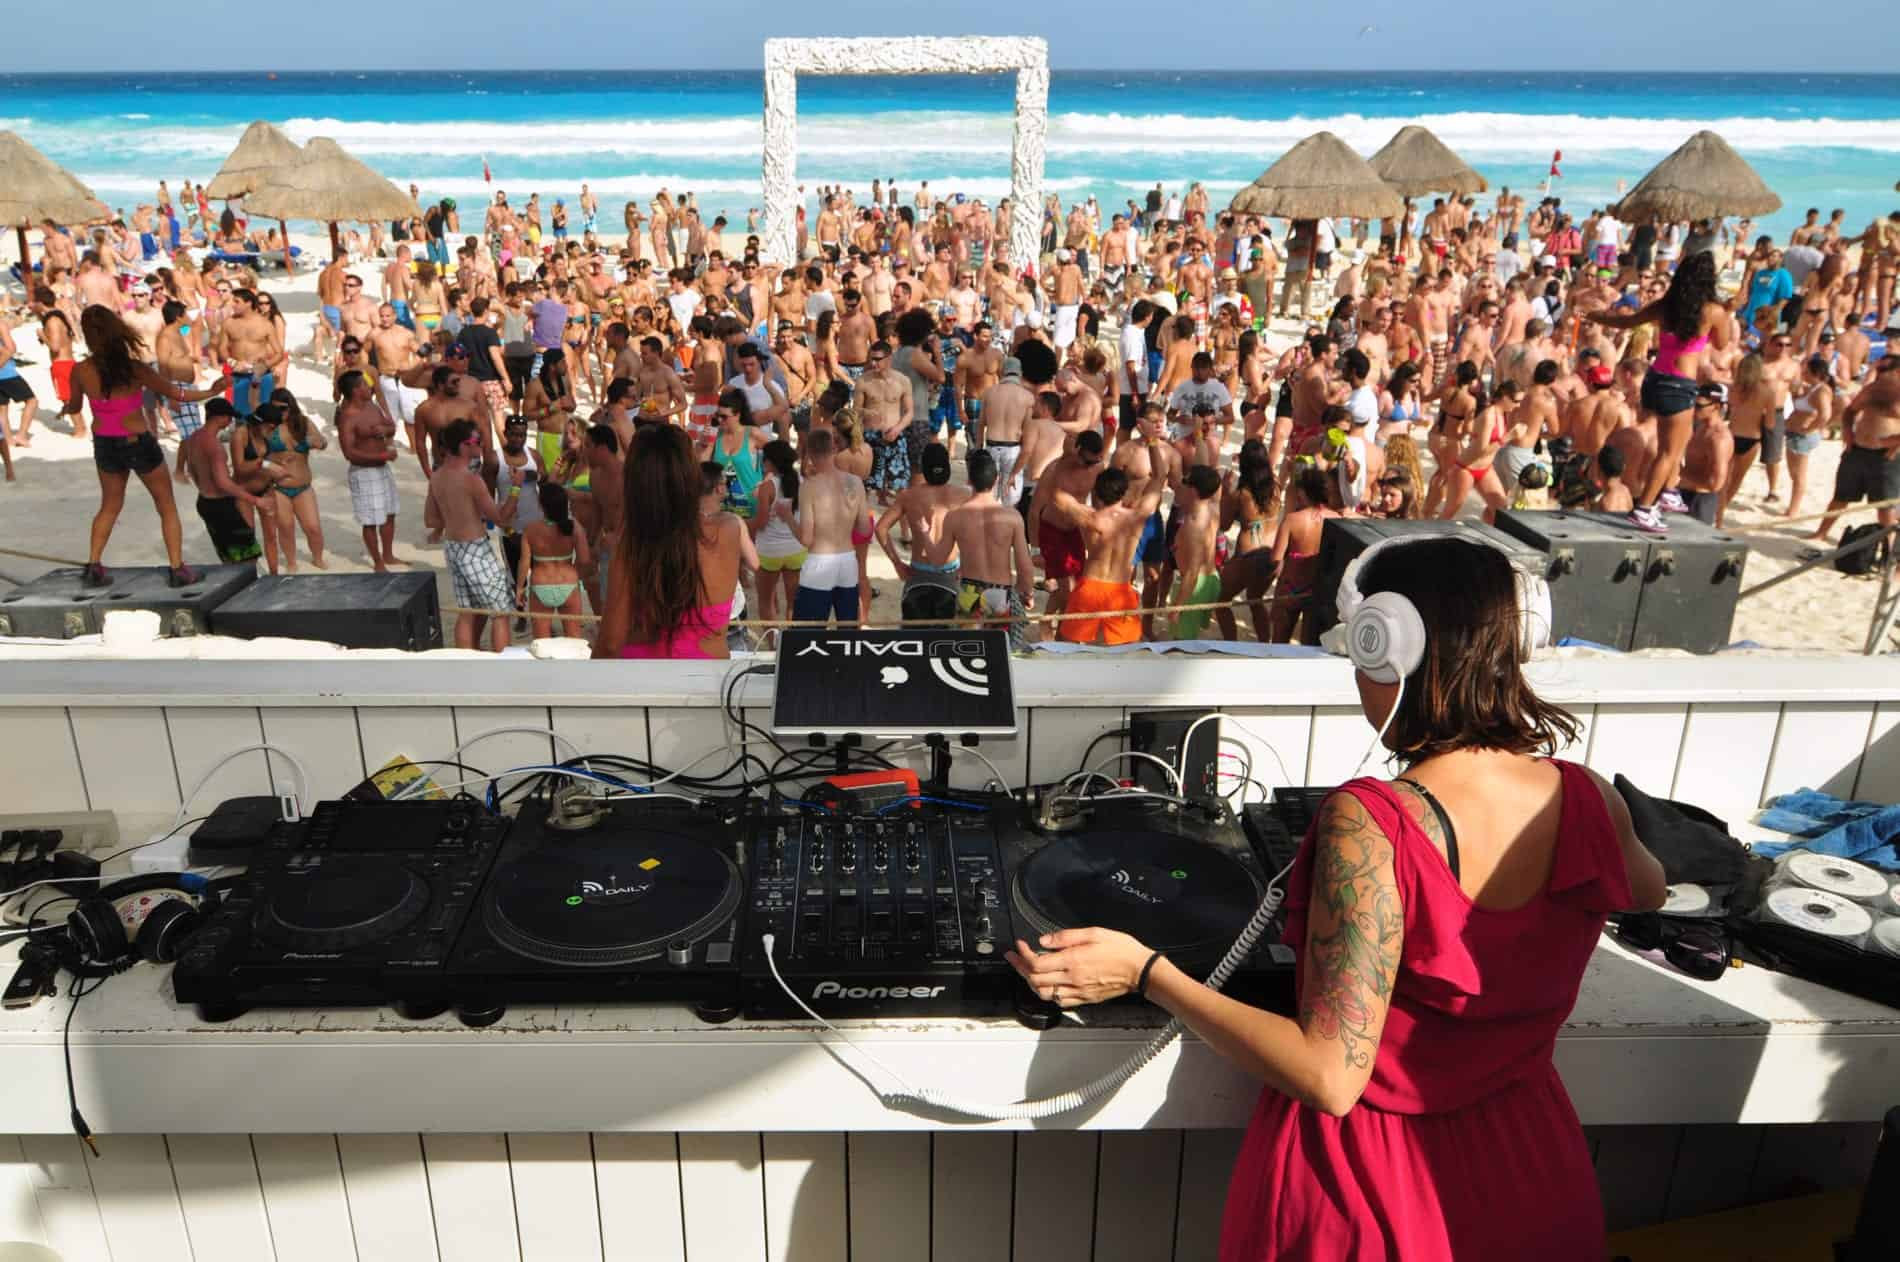 Grand Oasis Resort Cancun beach party holiday